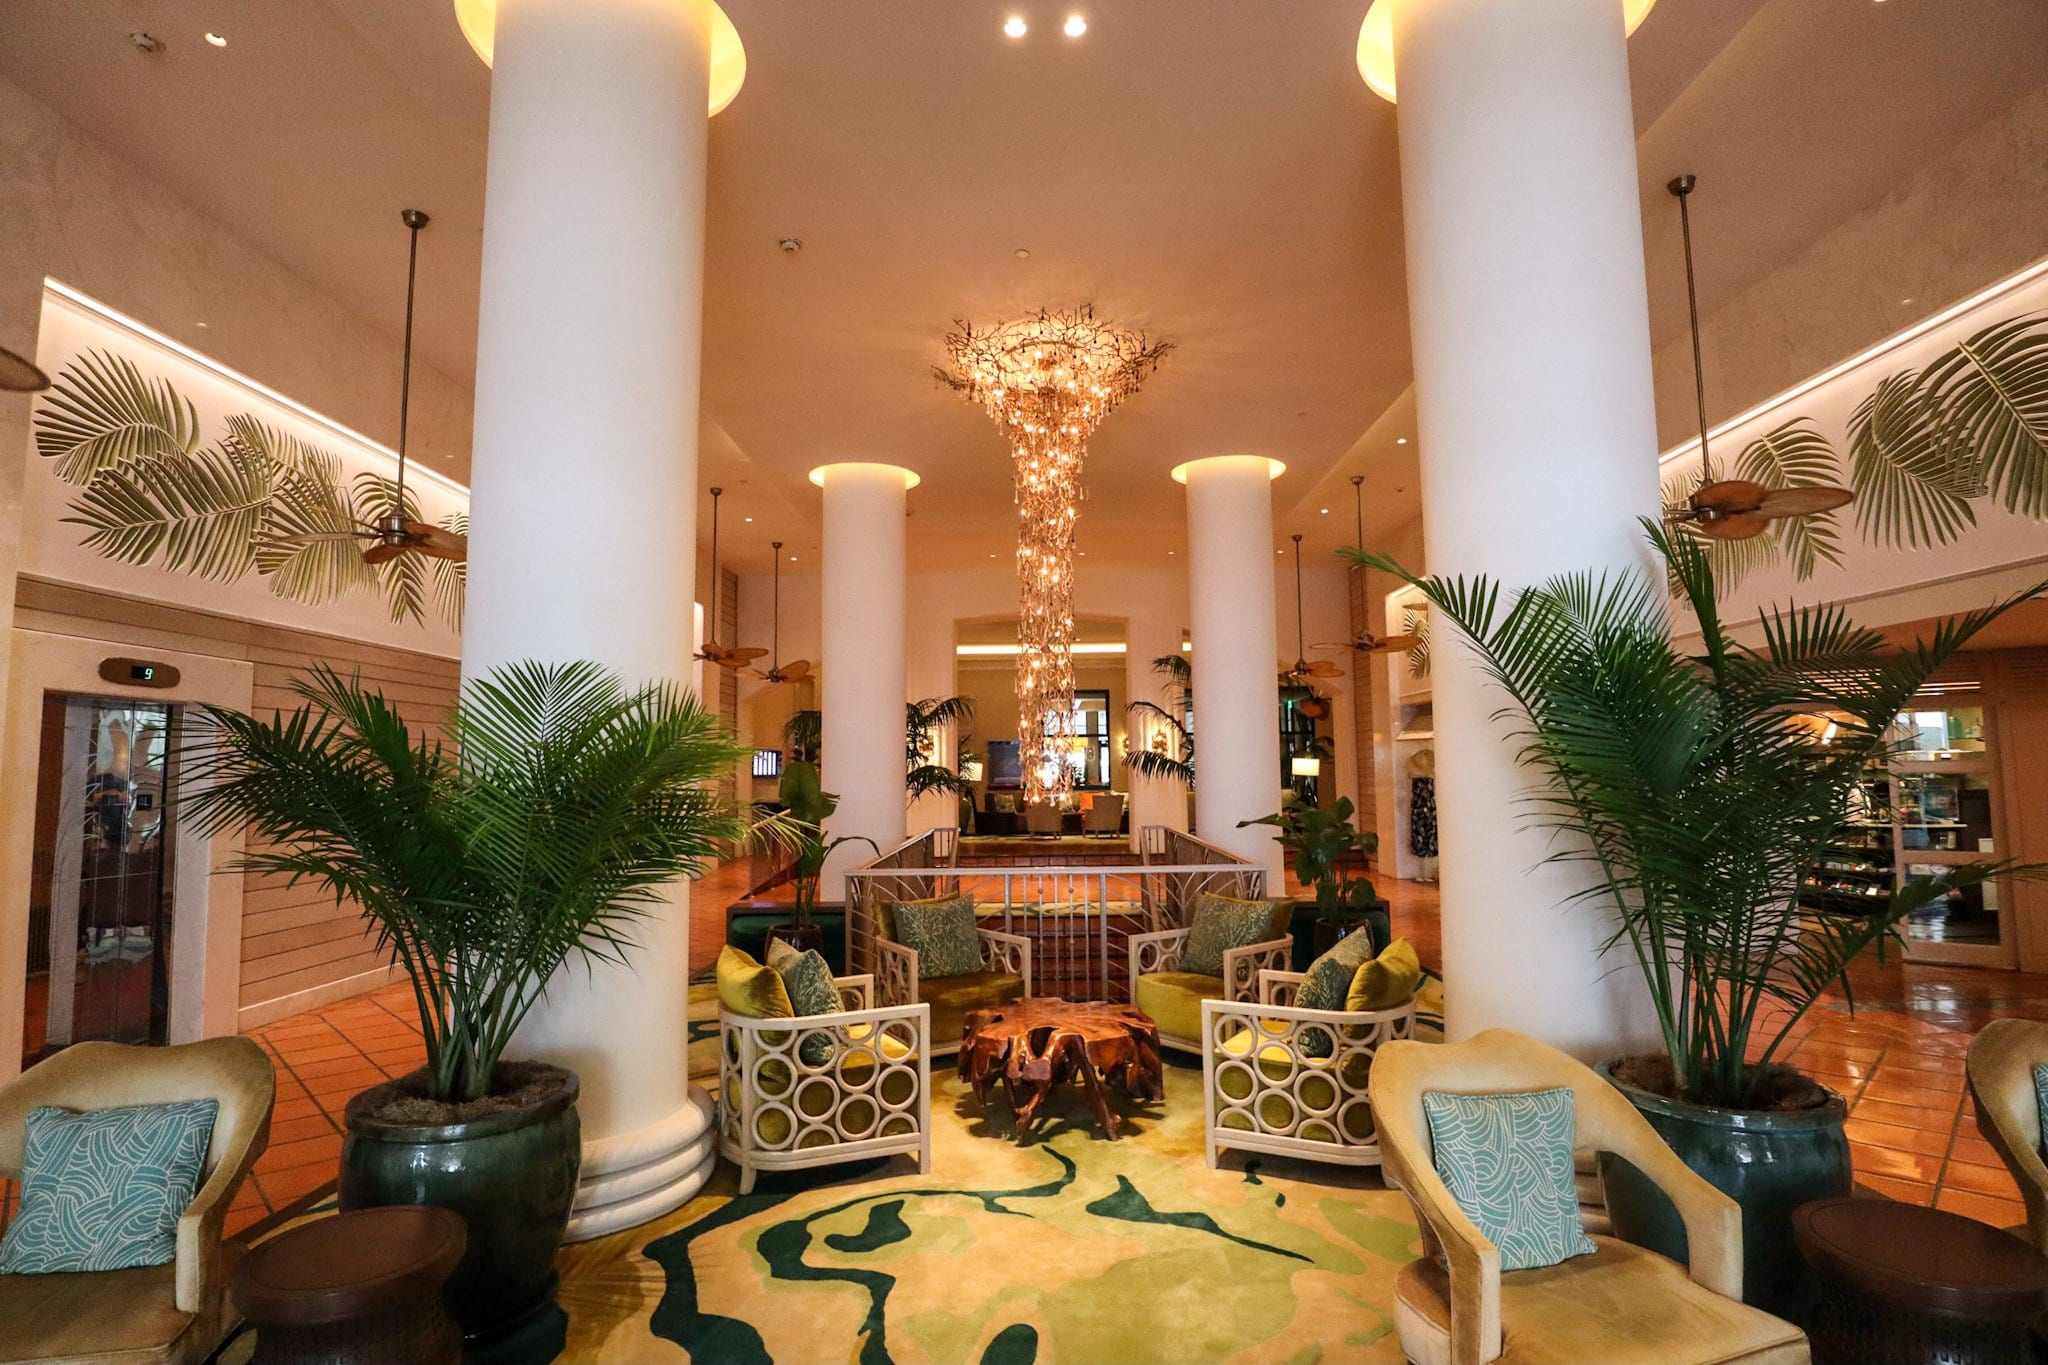 Stay At The Best Sustainable Luxury Hotel in Miami – The Palms Hotel and Spa Review